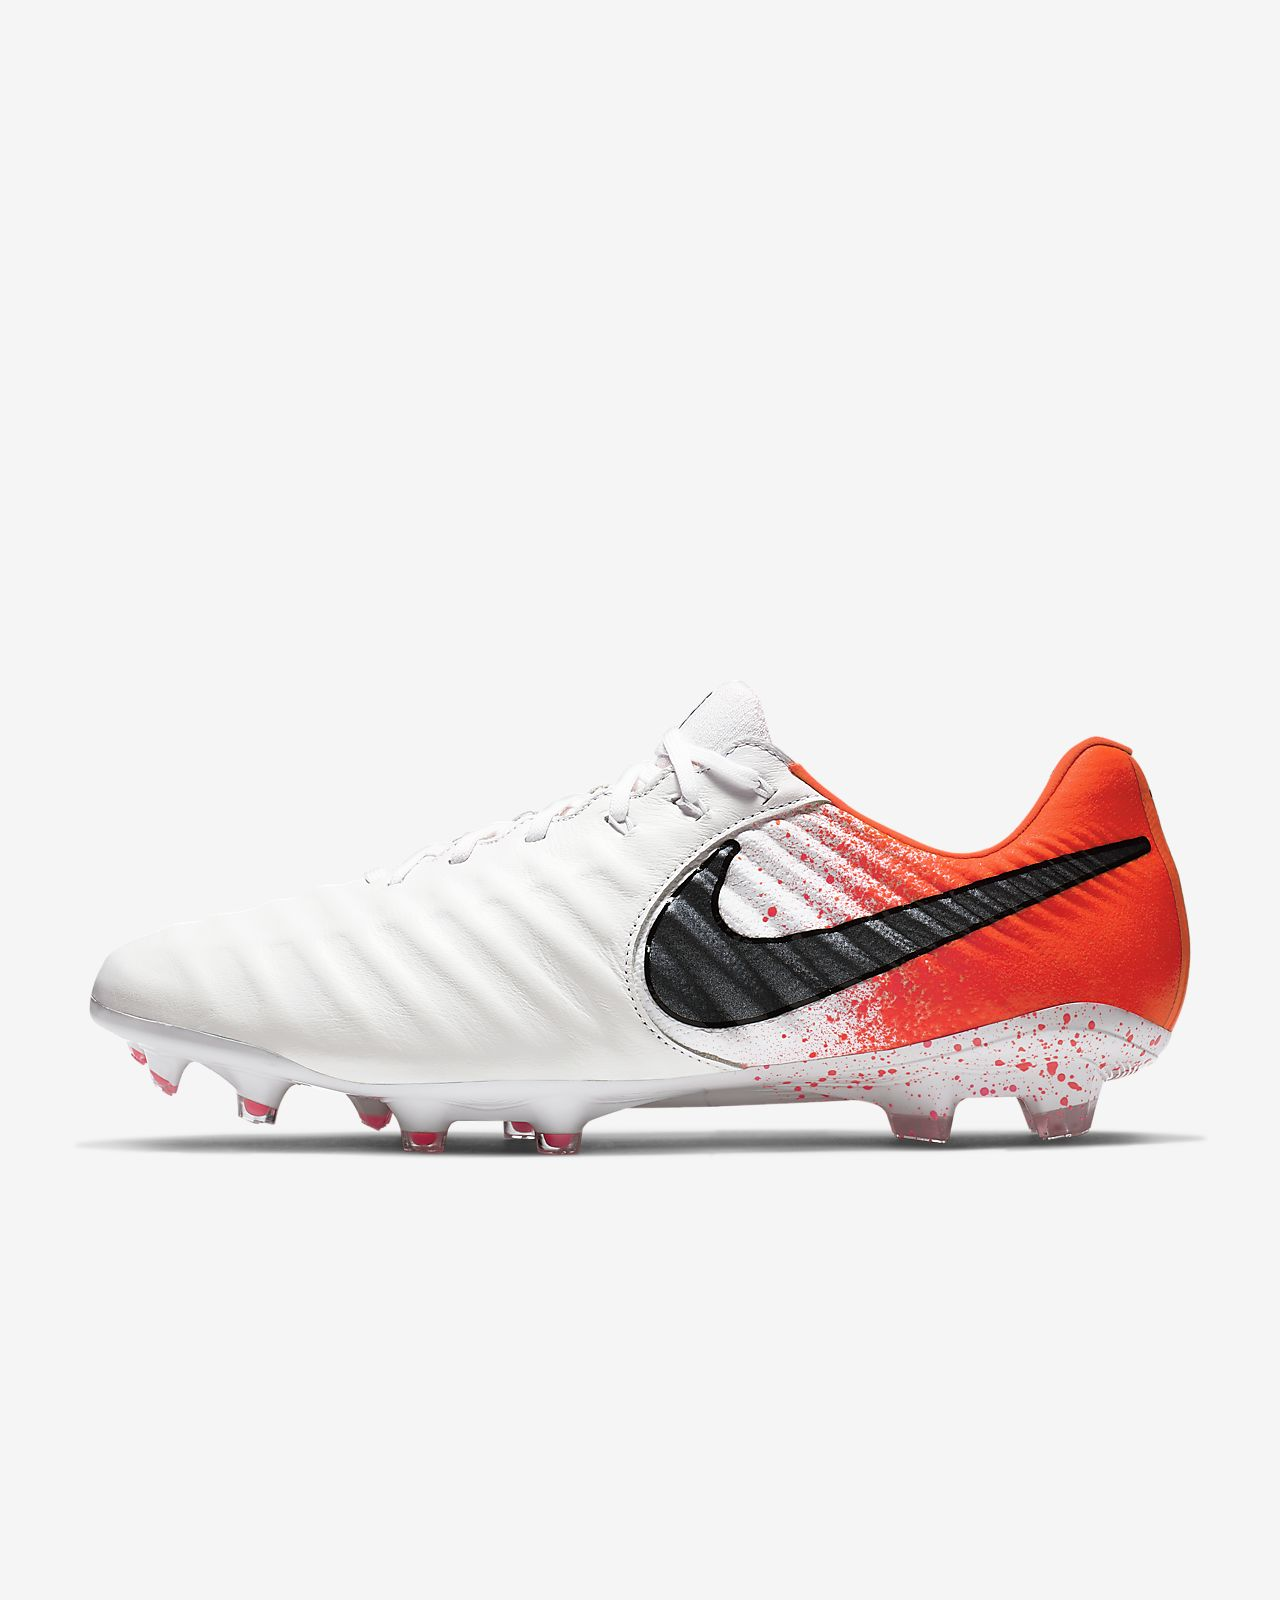 b8e3b8d3401 Nike Tiempo Legend 7 Elite FG Firm-Ground Football Boot